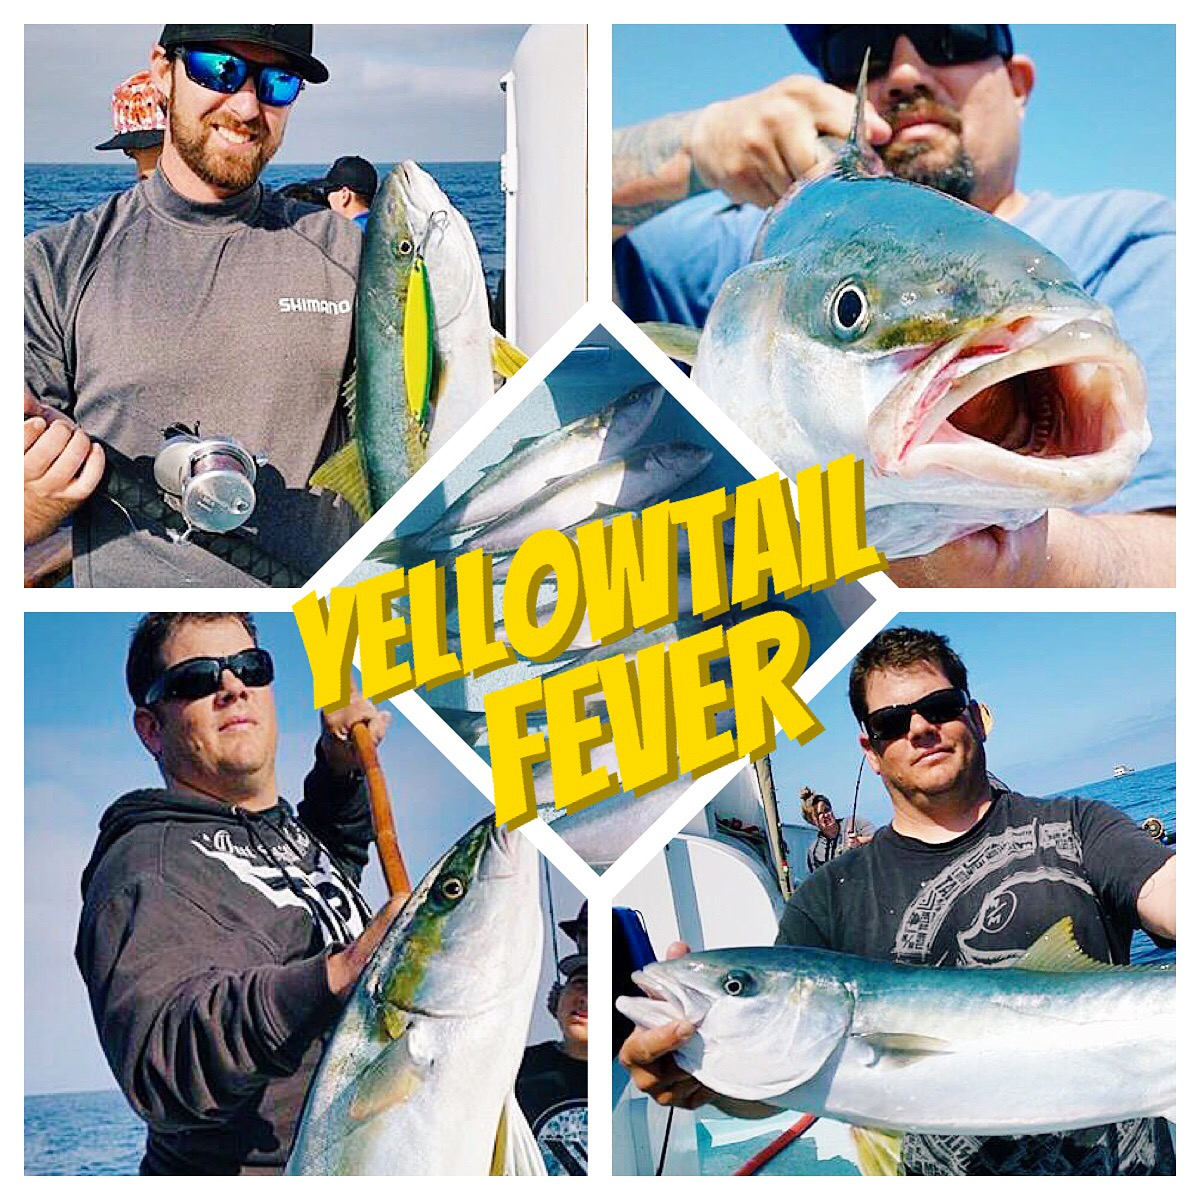 Coastal Waters Off Newport And Offs Contain Over 30 Varieties Of Fish Giant Yellowtail To 40 Pounds White Sea B Dorado Tuna